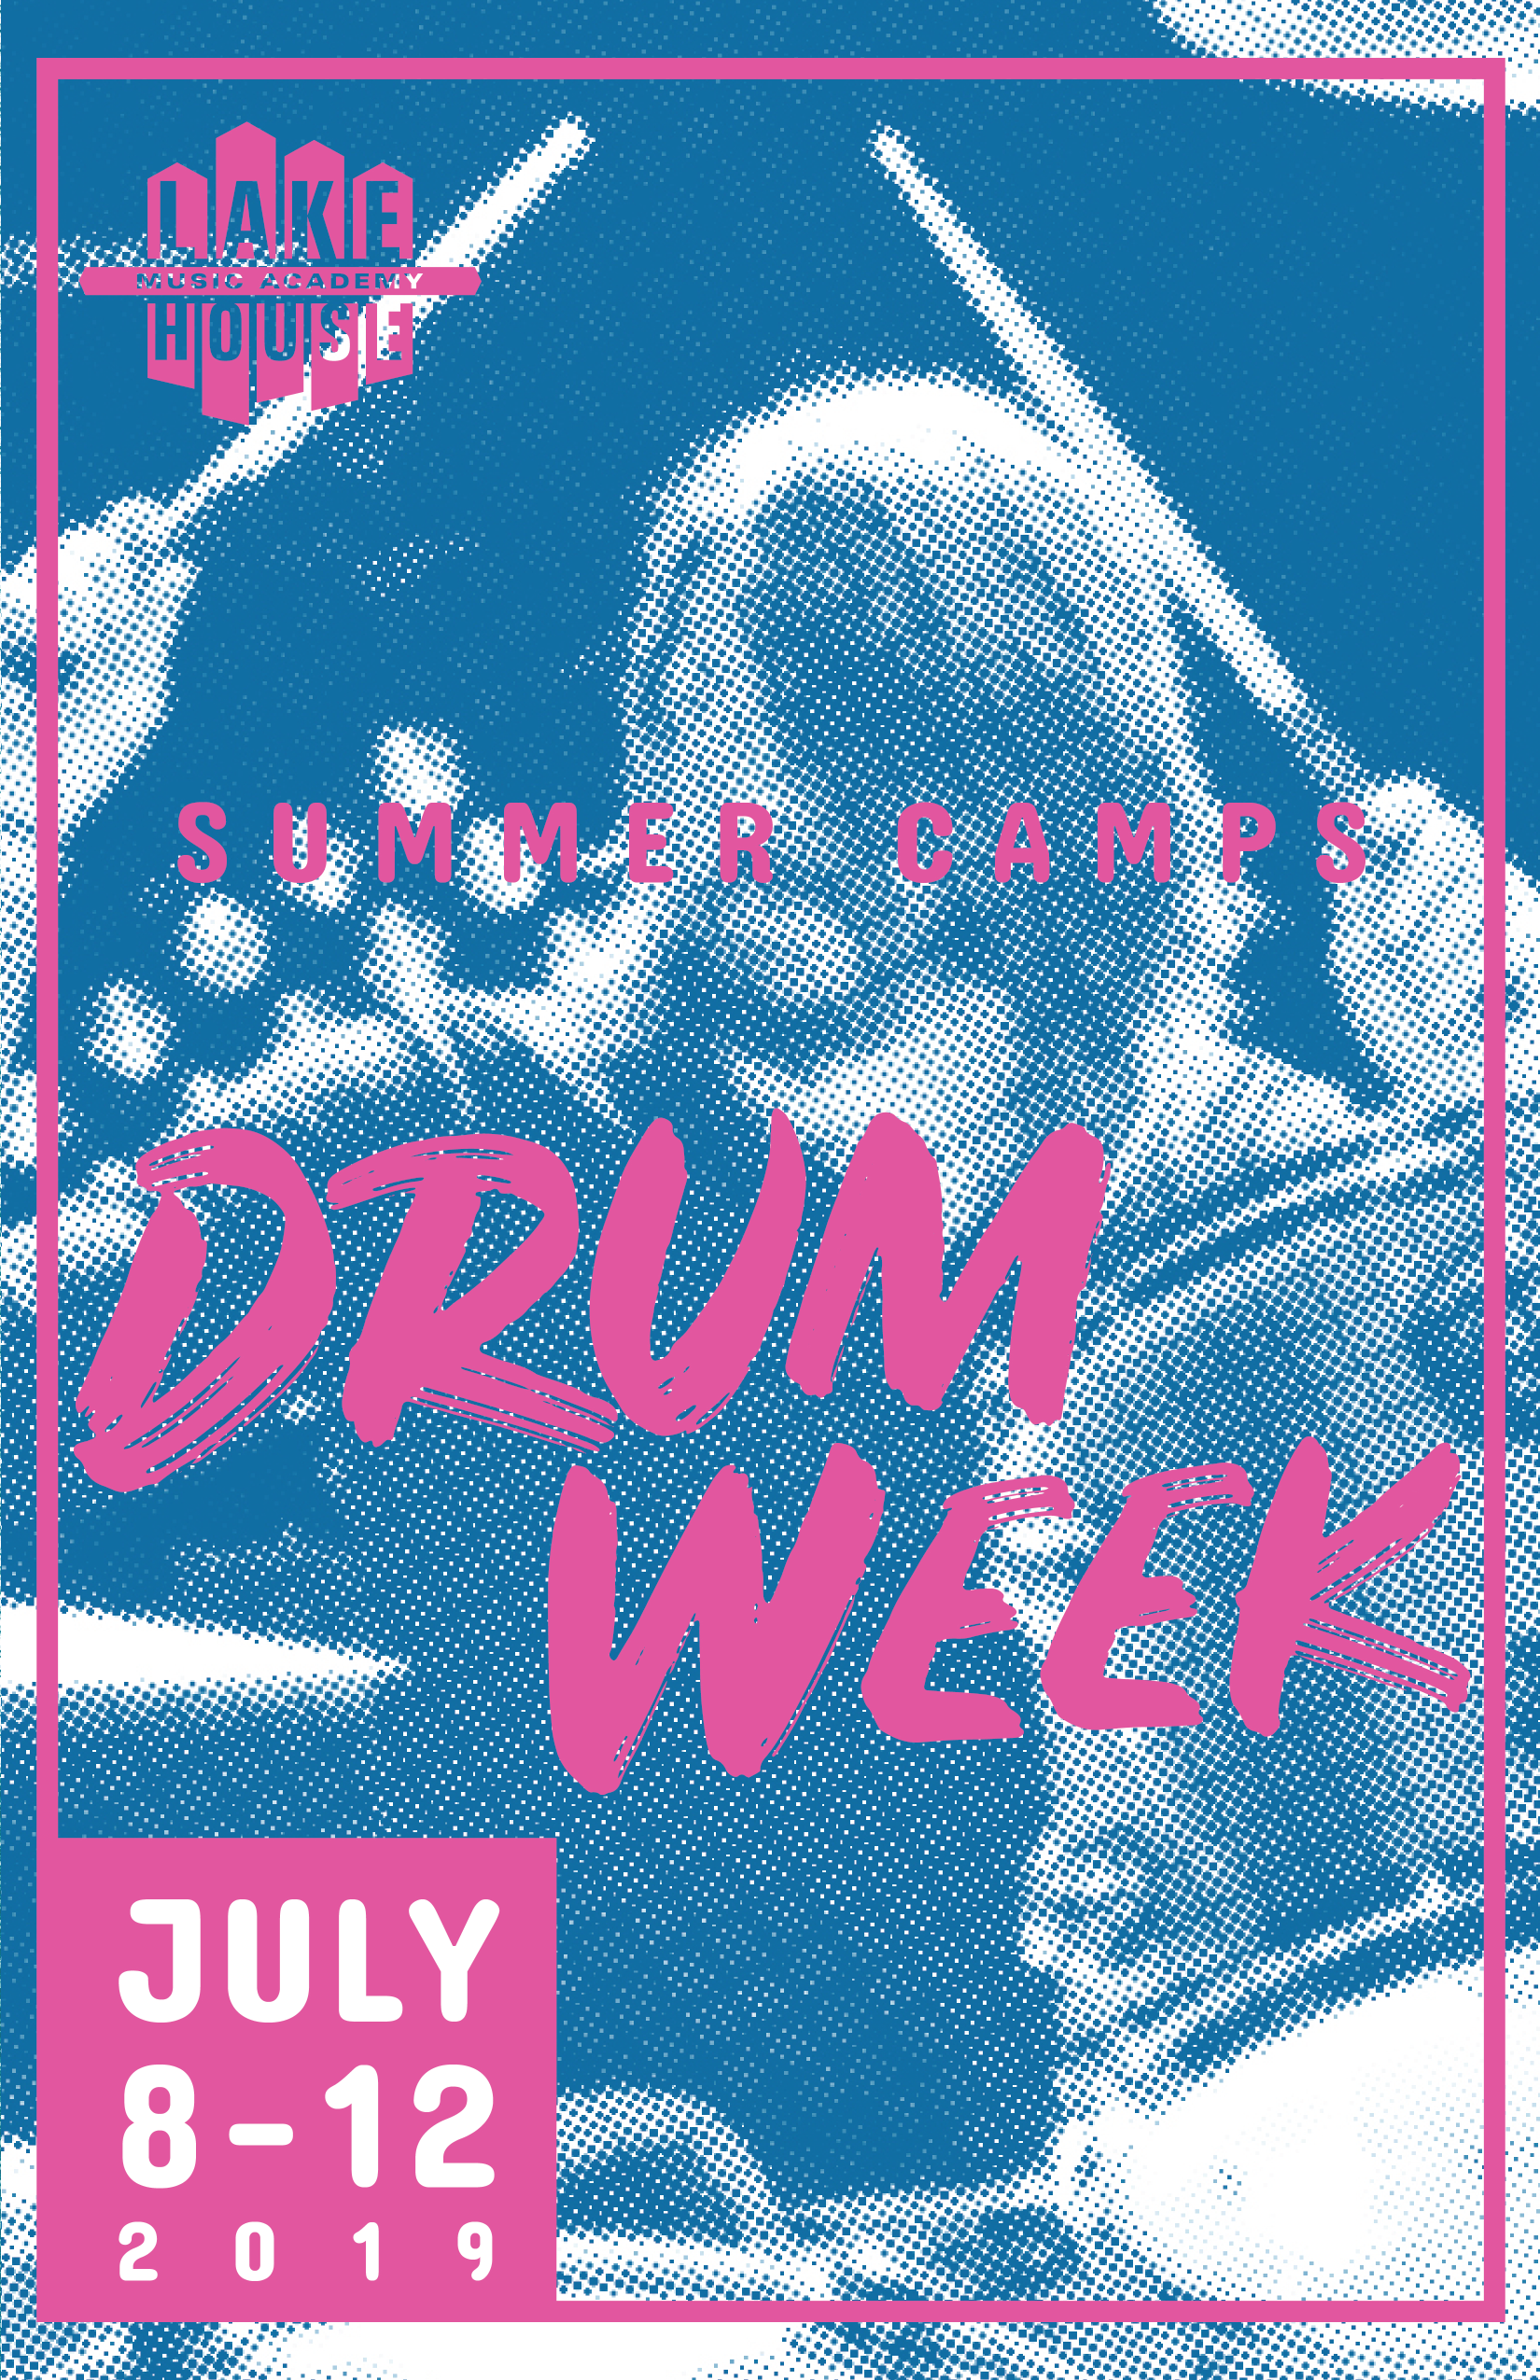 Drum Week - July 8 - 12